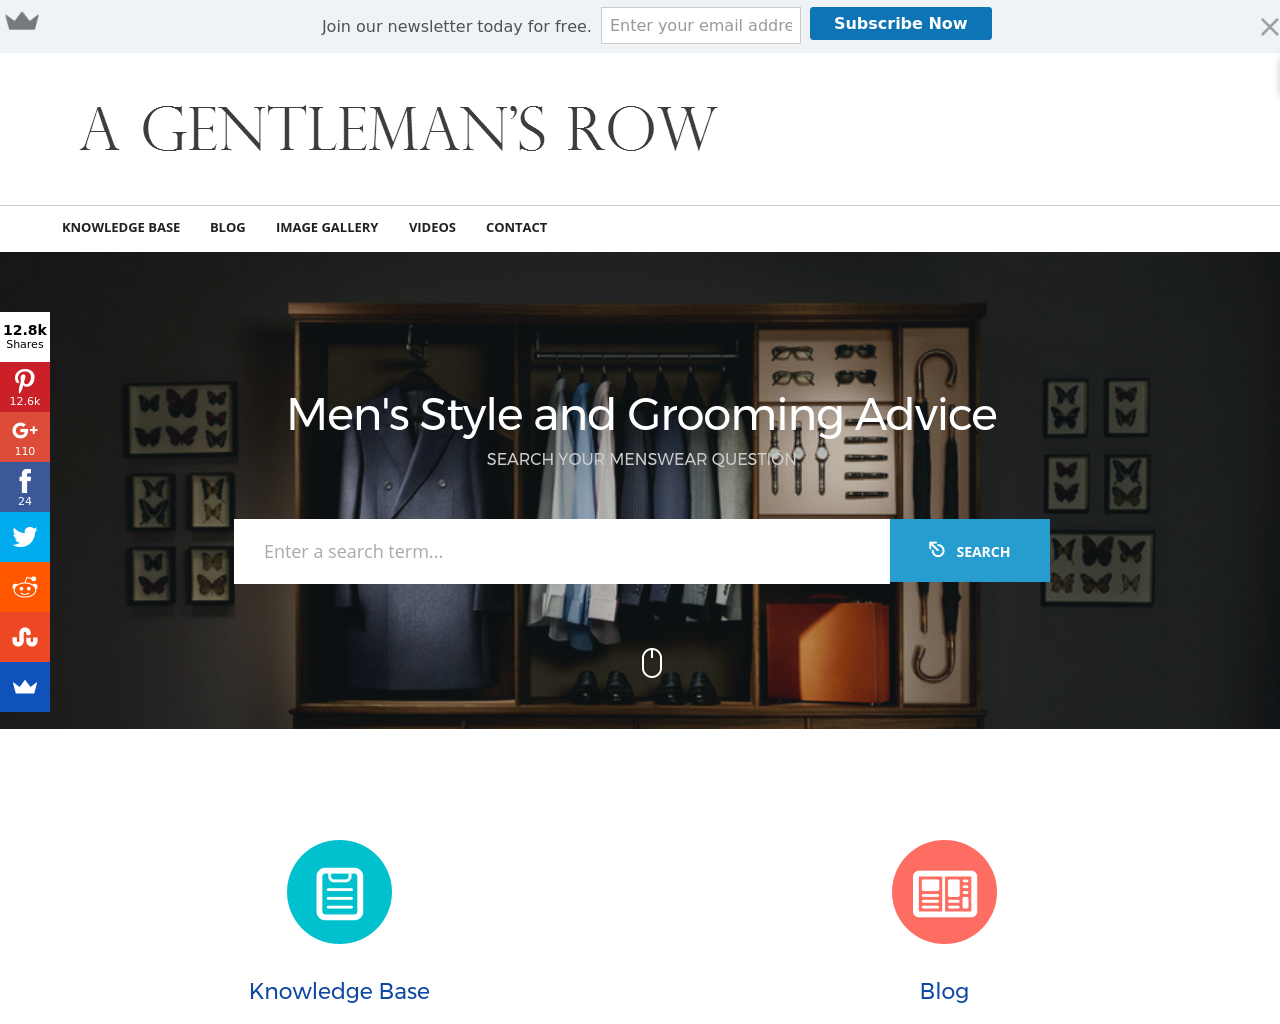 A-Gentleman's-Row-Advertising-Reviews-Pricing